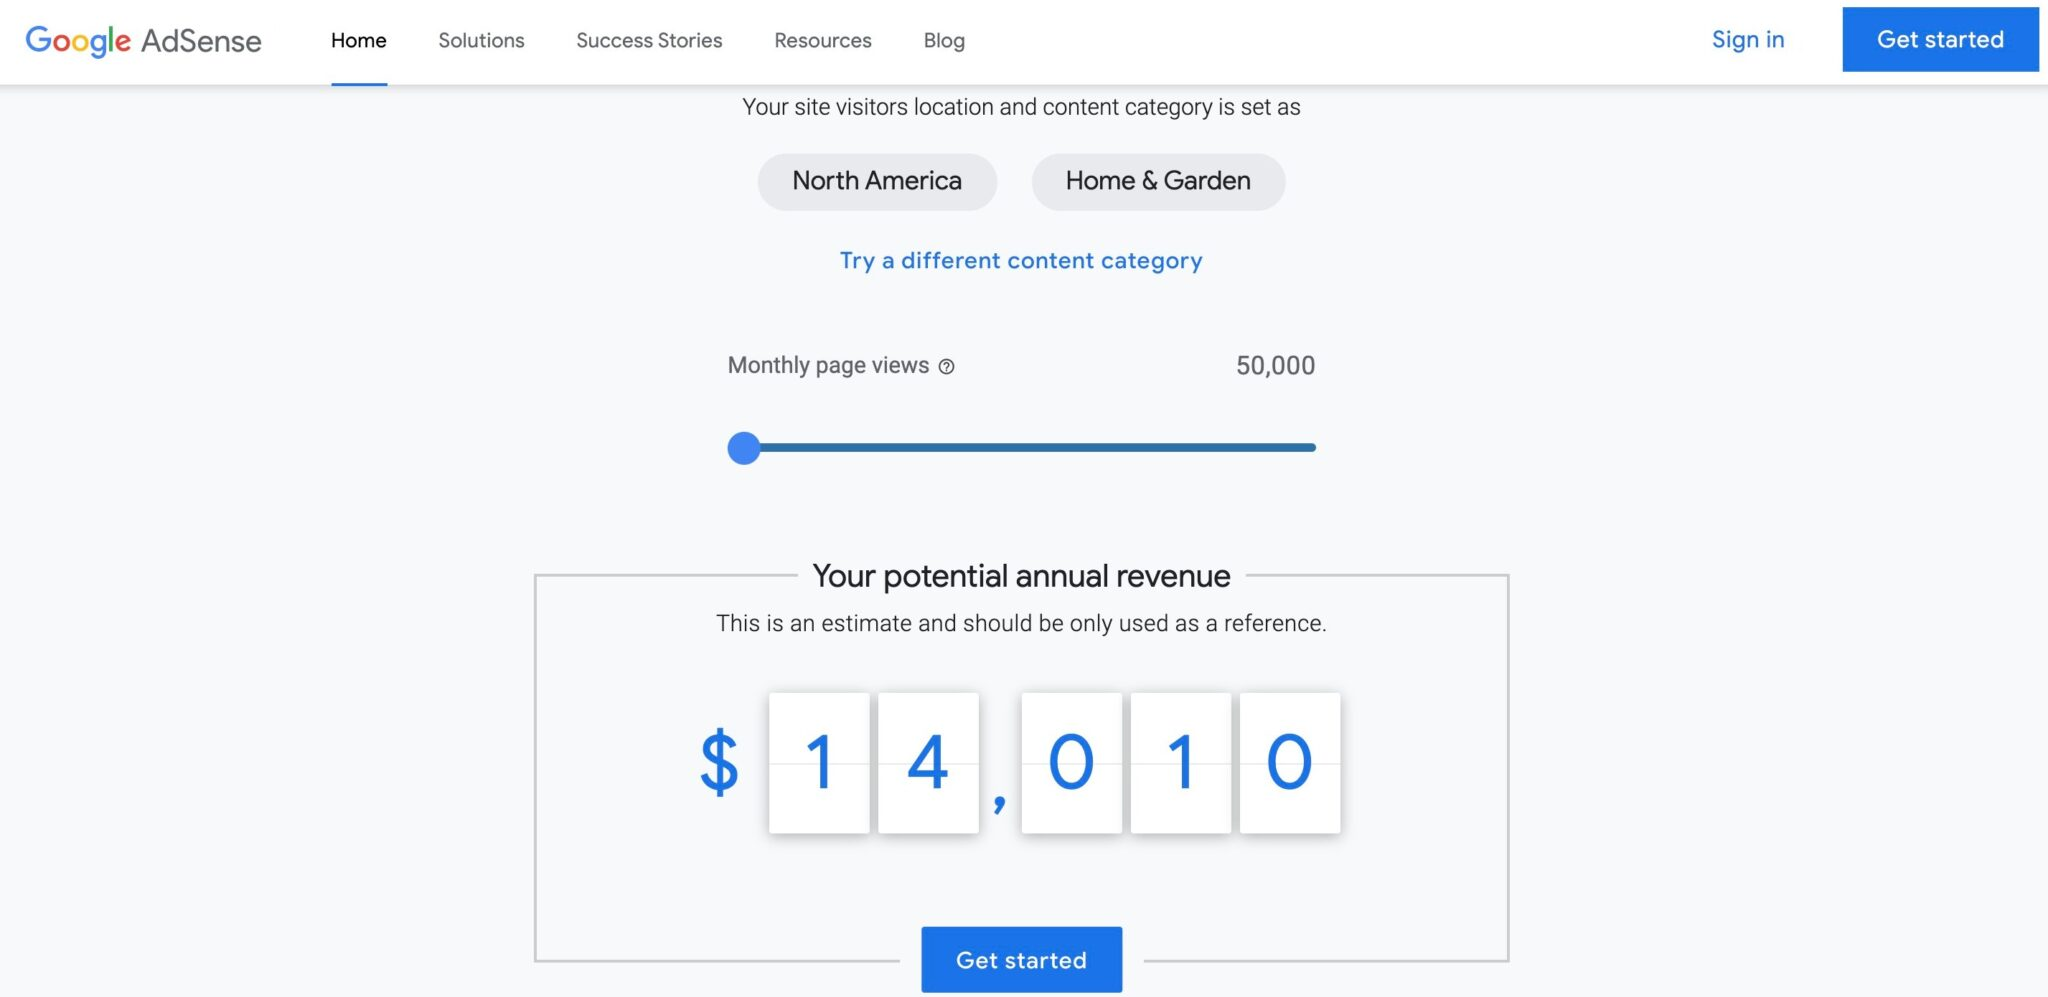 How much does Google AdSense pay per Pageview